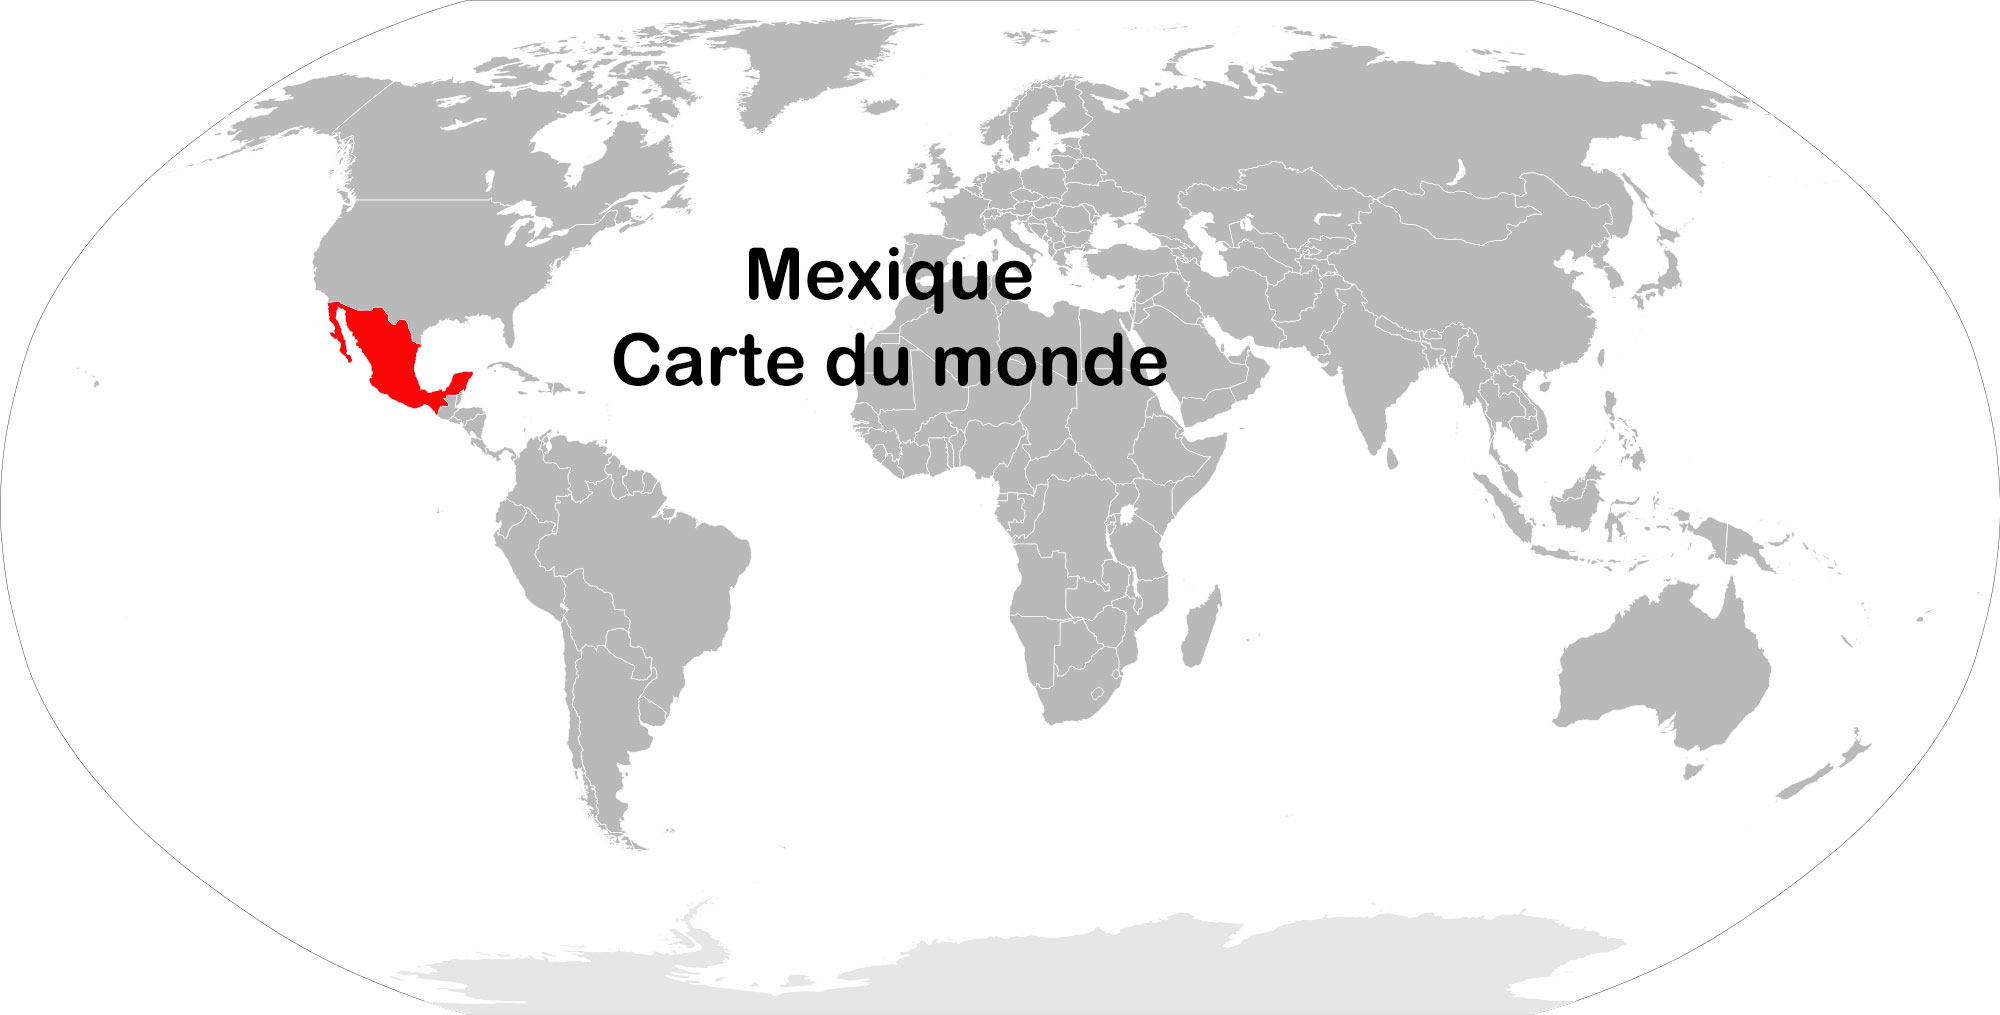 Mexique - Carte du monde